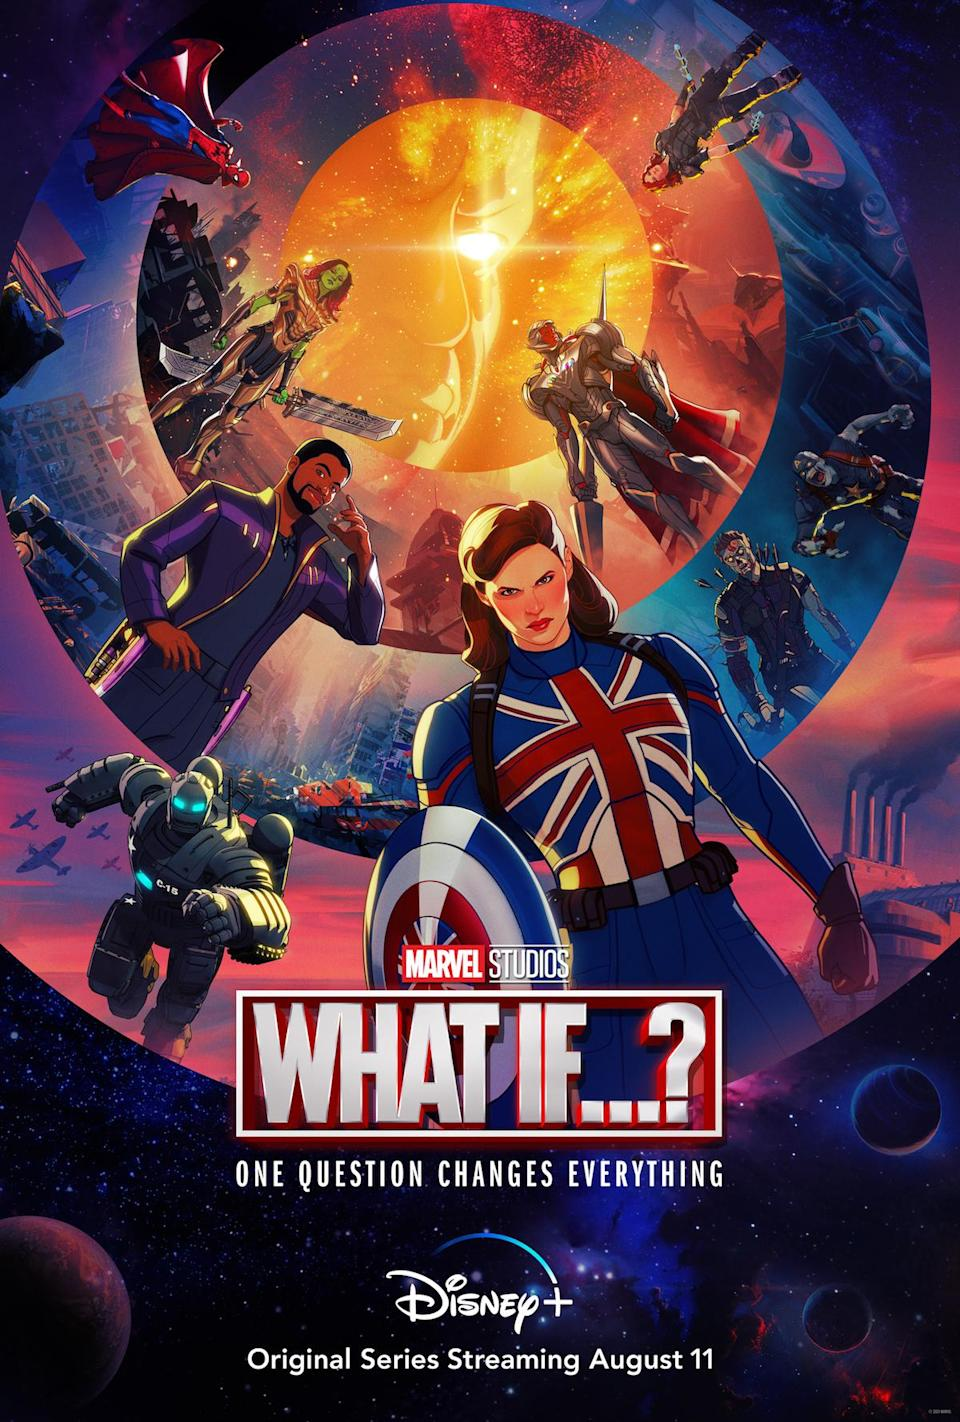 A collection of animated superheroes crowd Marvel's What If...? poster.